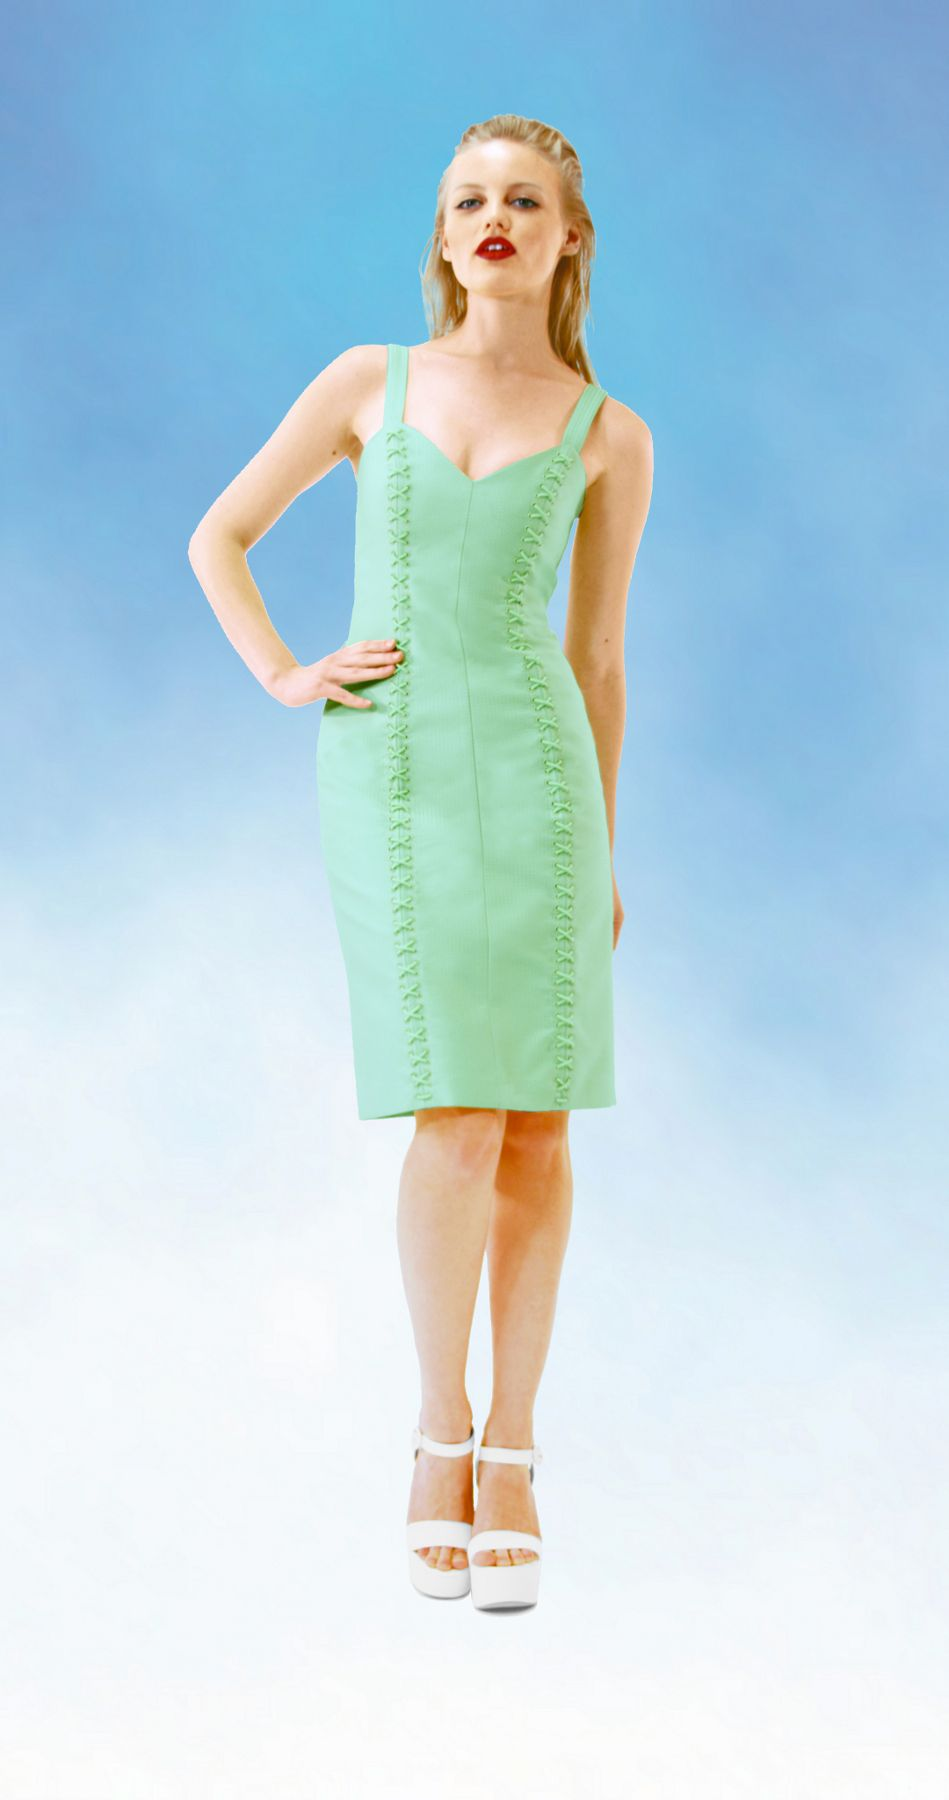 Green lace up dress  DEIVIE SS  Electric pencil dress green dress lace up dress